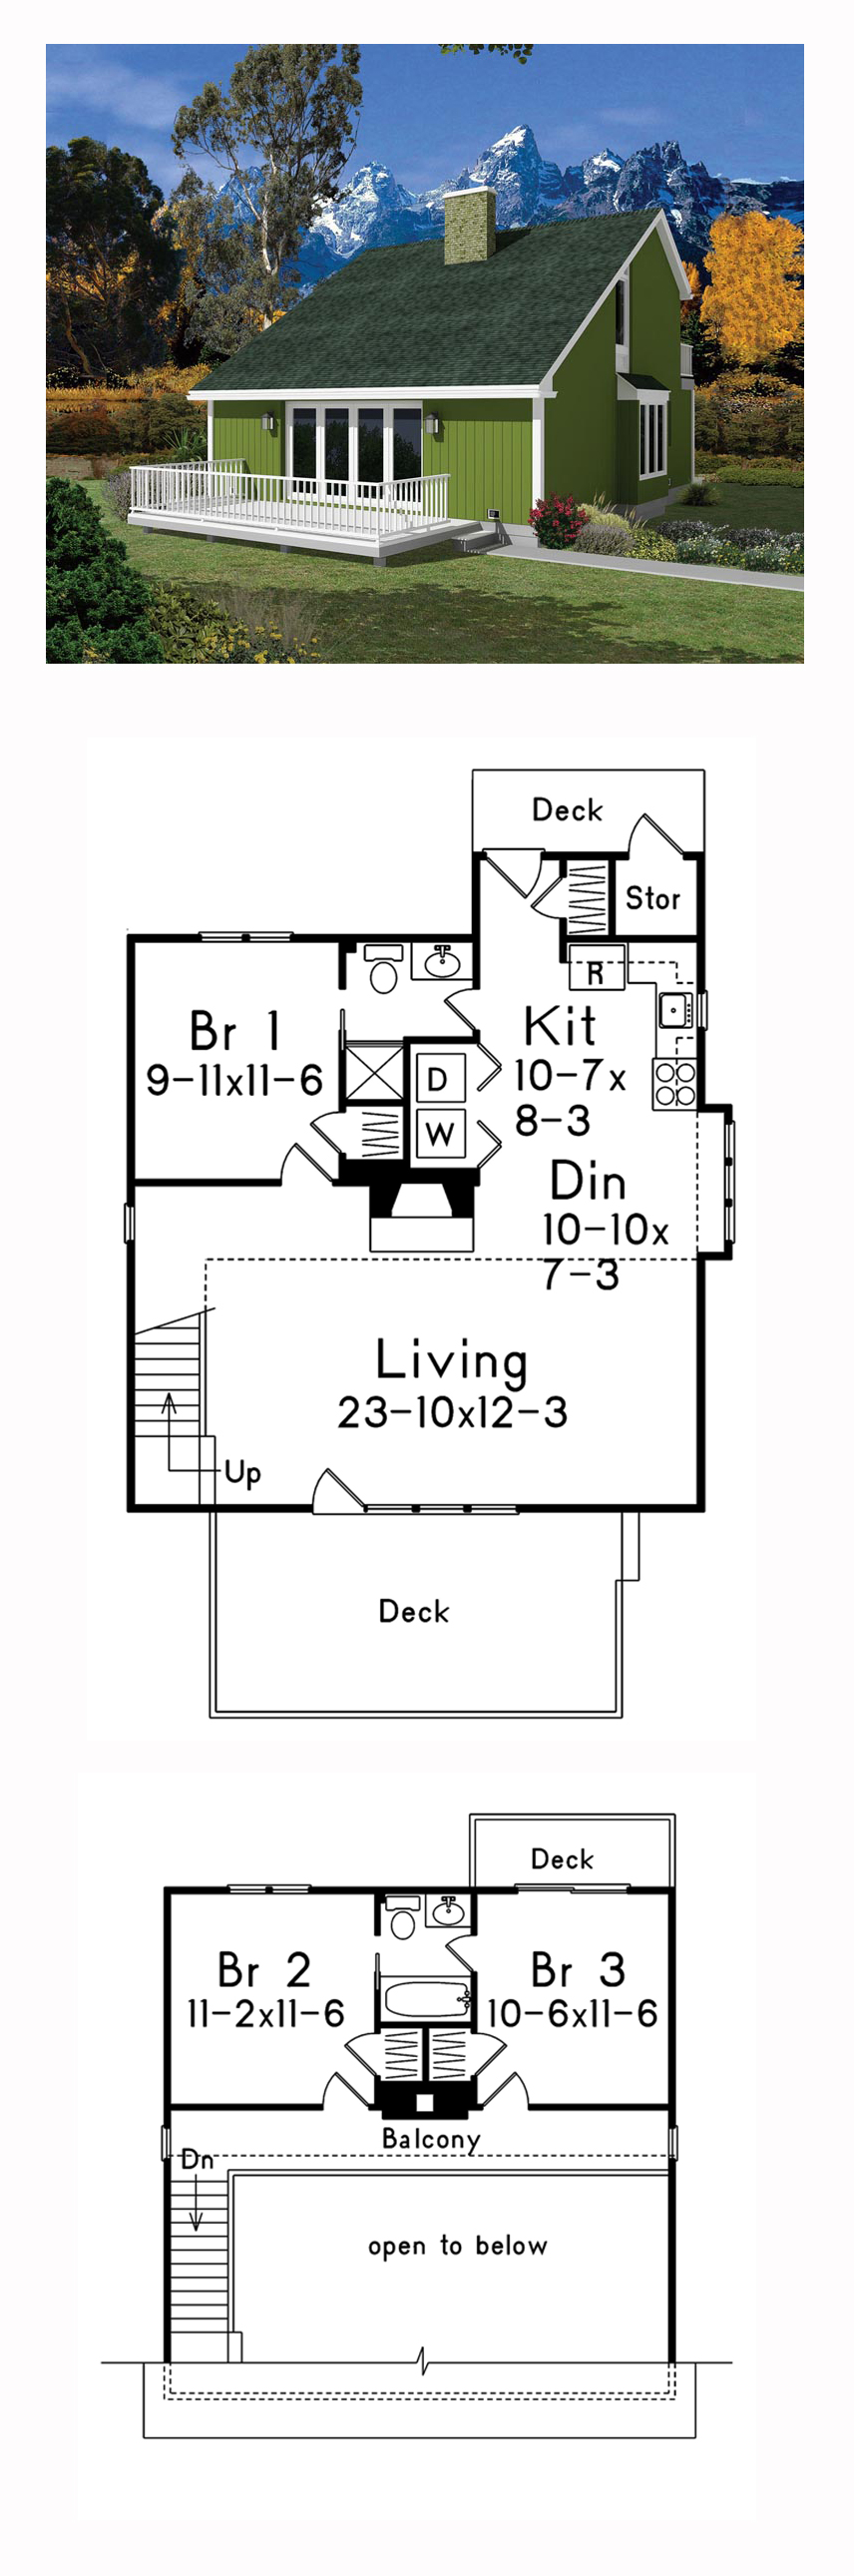 Contemporary Style House Plan 95994 With 3 Bed 2 Bath Victorian House Plans Sims House Plans House Plans